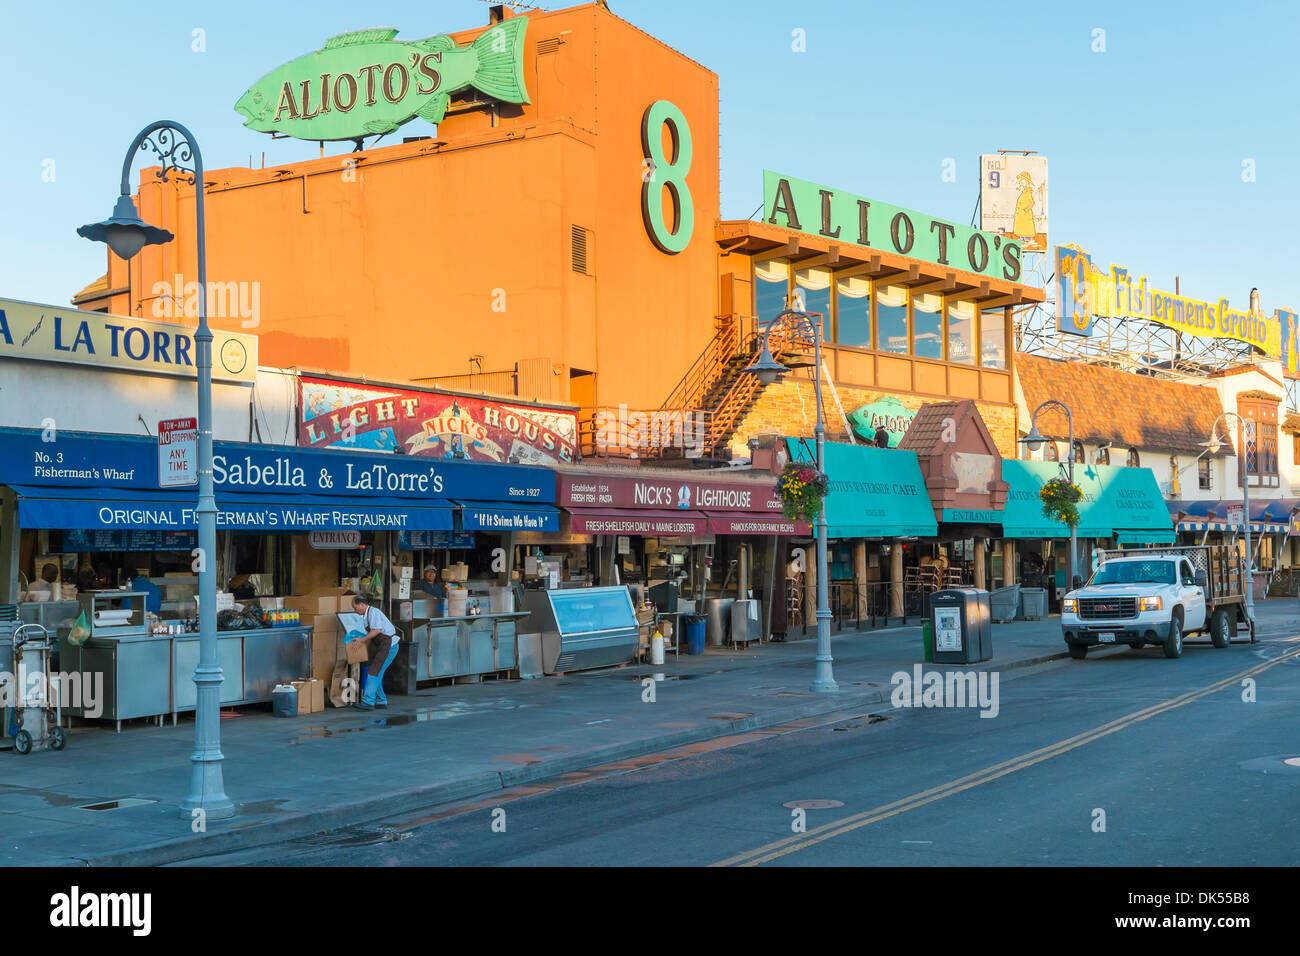 San Francisco street scene. Stores and restaurants opening in the morning at Fisherman's Wharf, San Francisco, California. - Stock Image